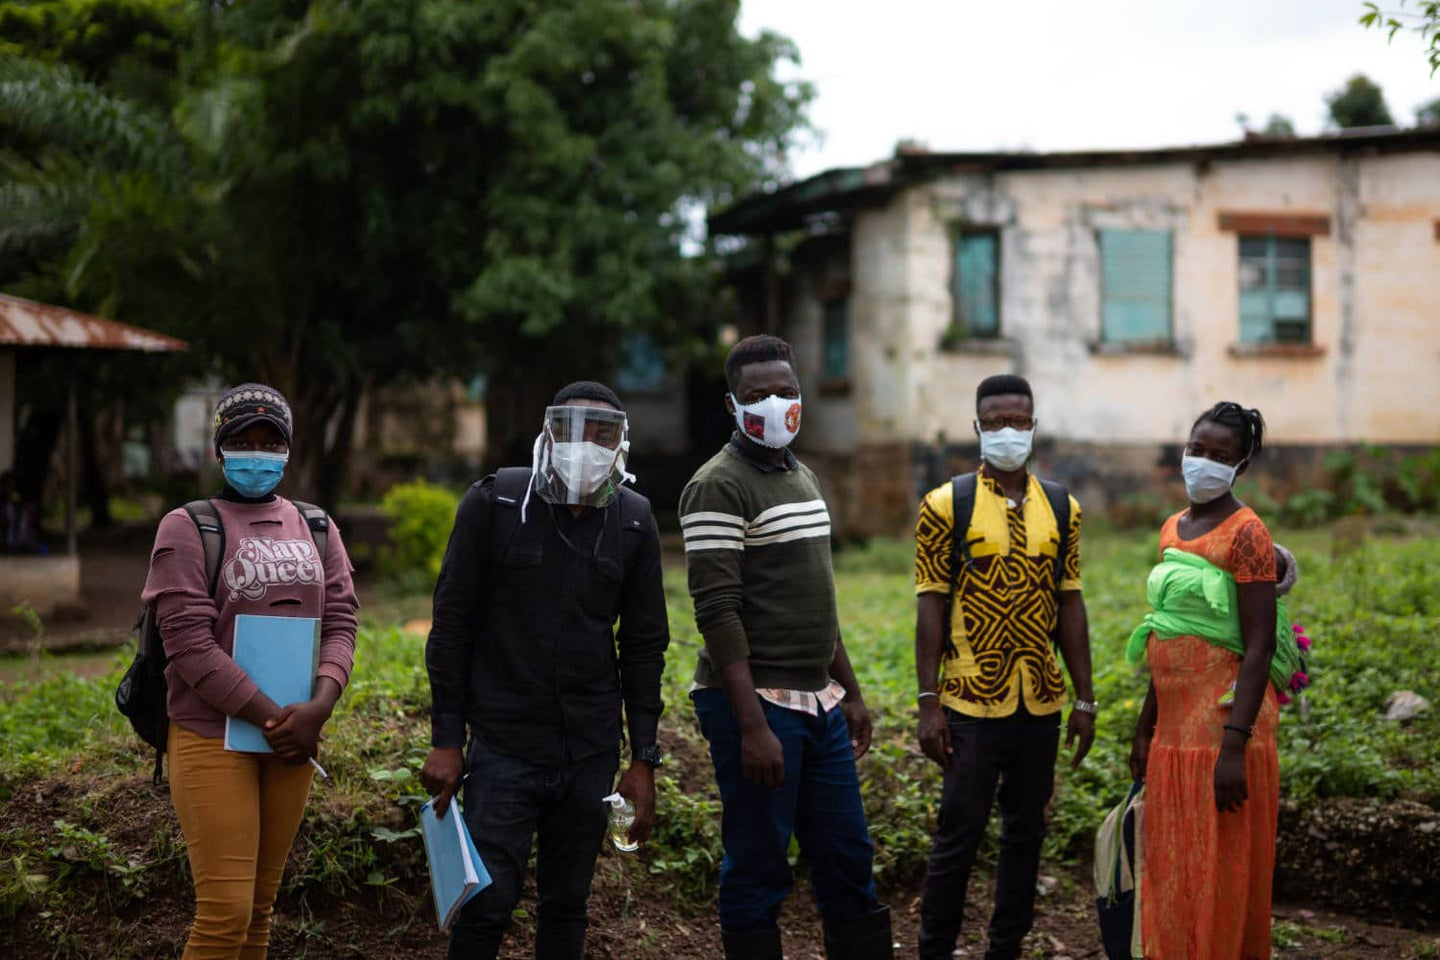 aid workers in Africa go door-to-door to deliver accurate information about Covid-19